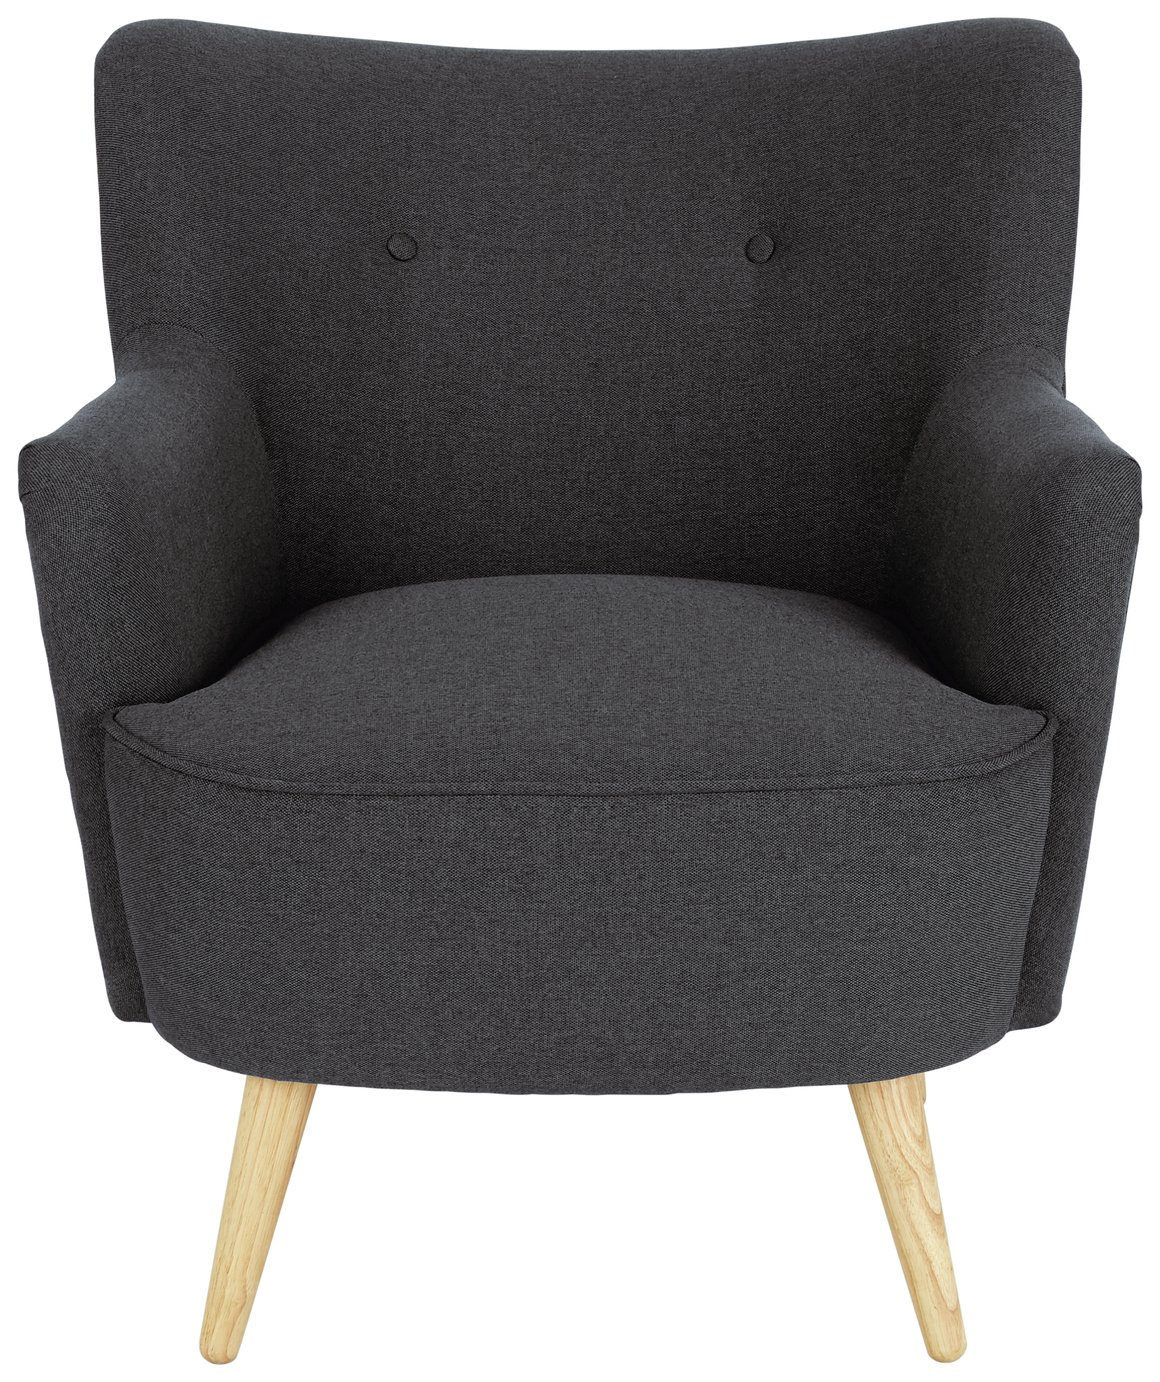 Habitat Franze Fabric Armchair - Charcoal